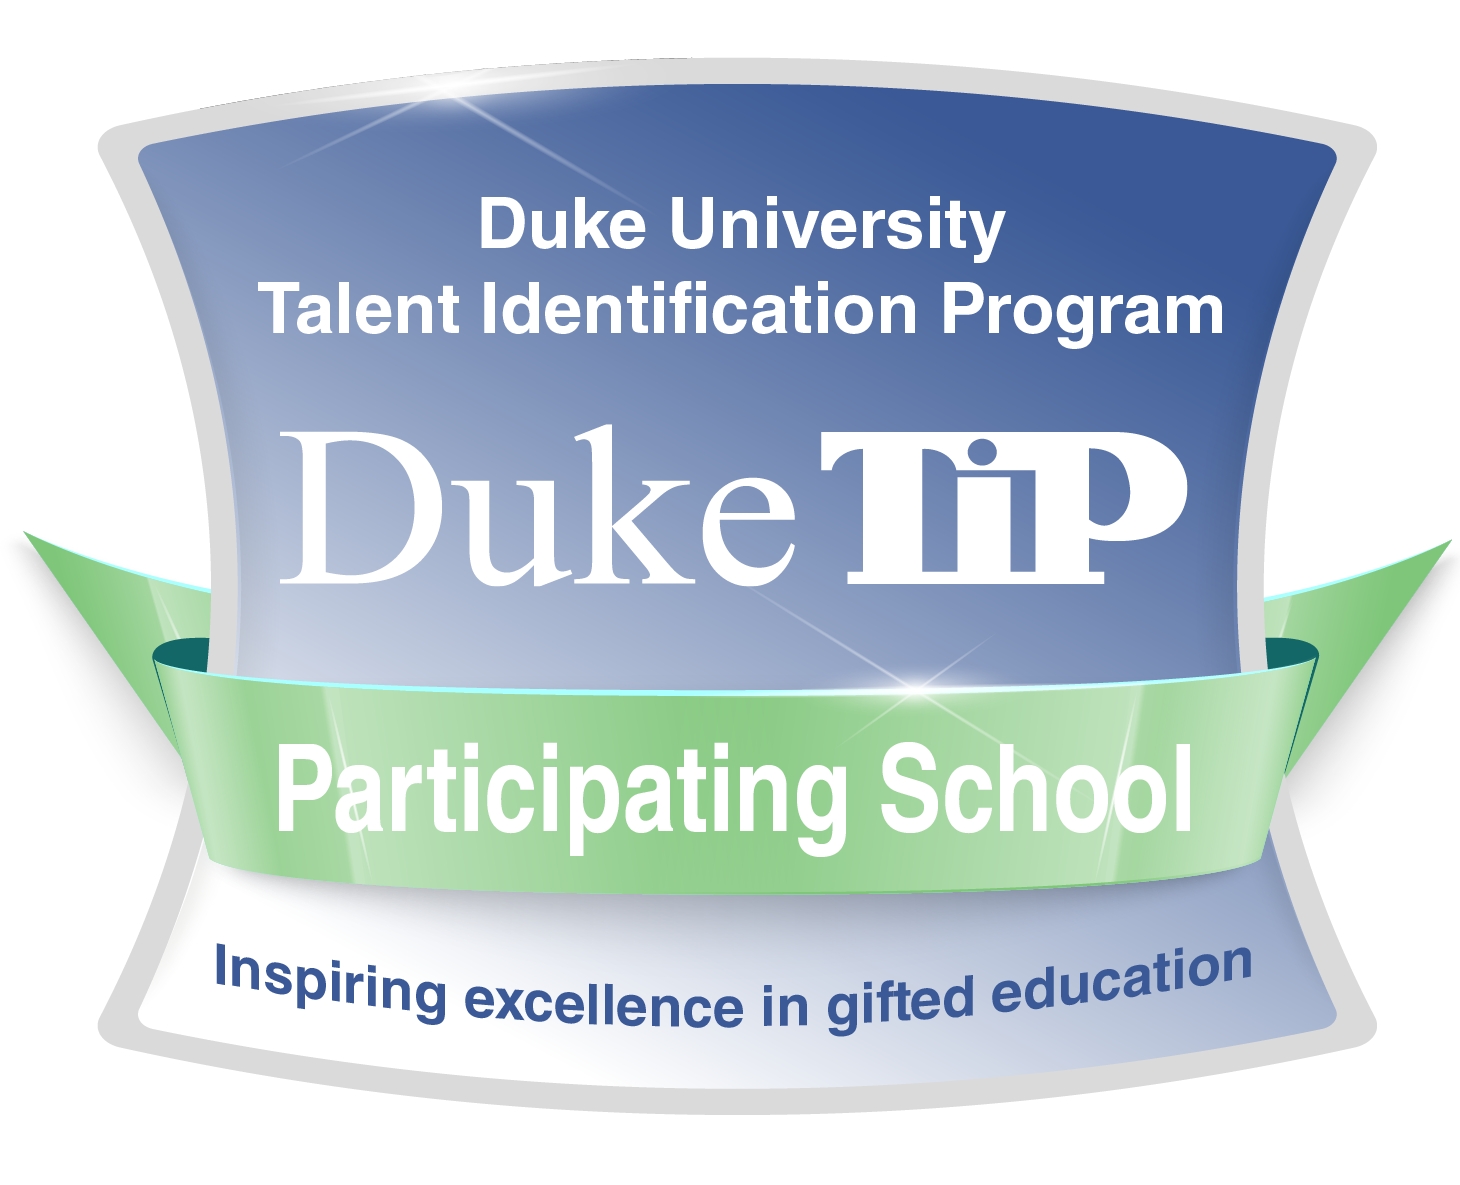 Ybarra Elementary is a Duke TIP Participating School